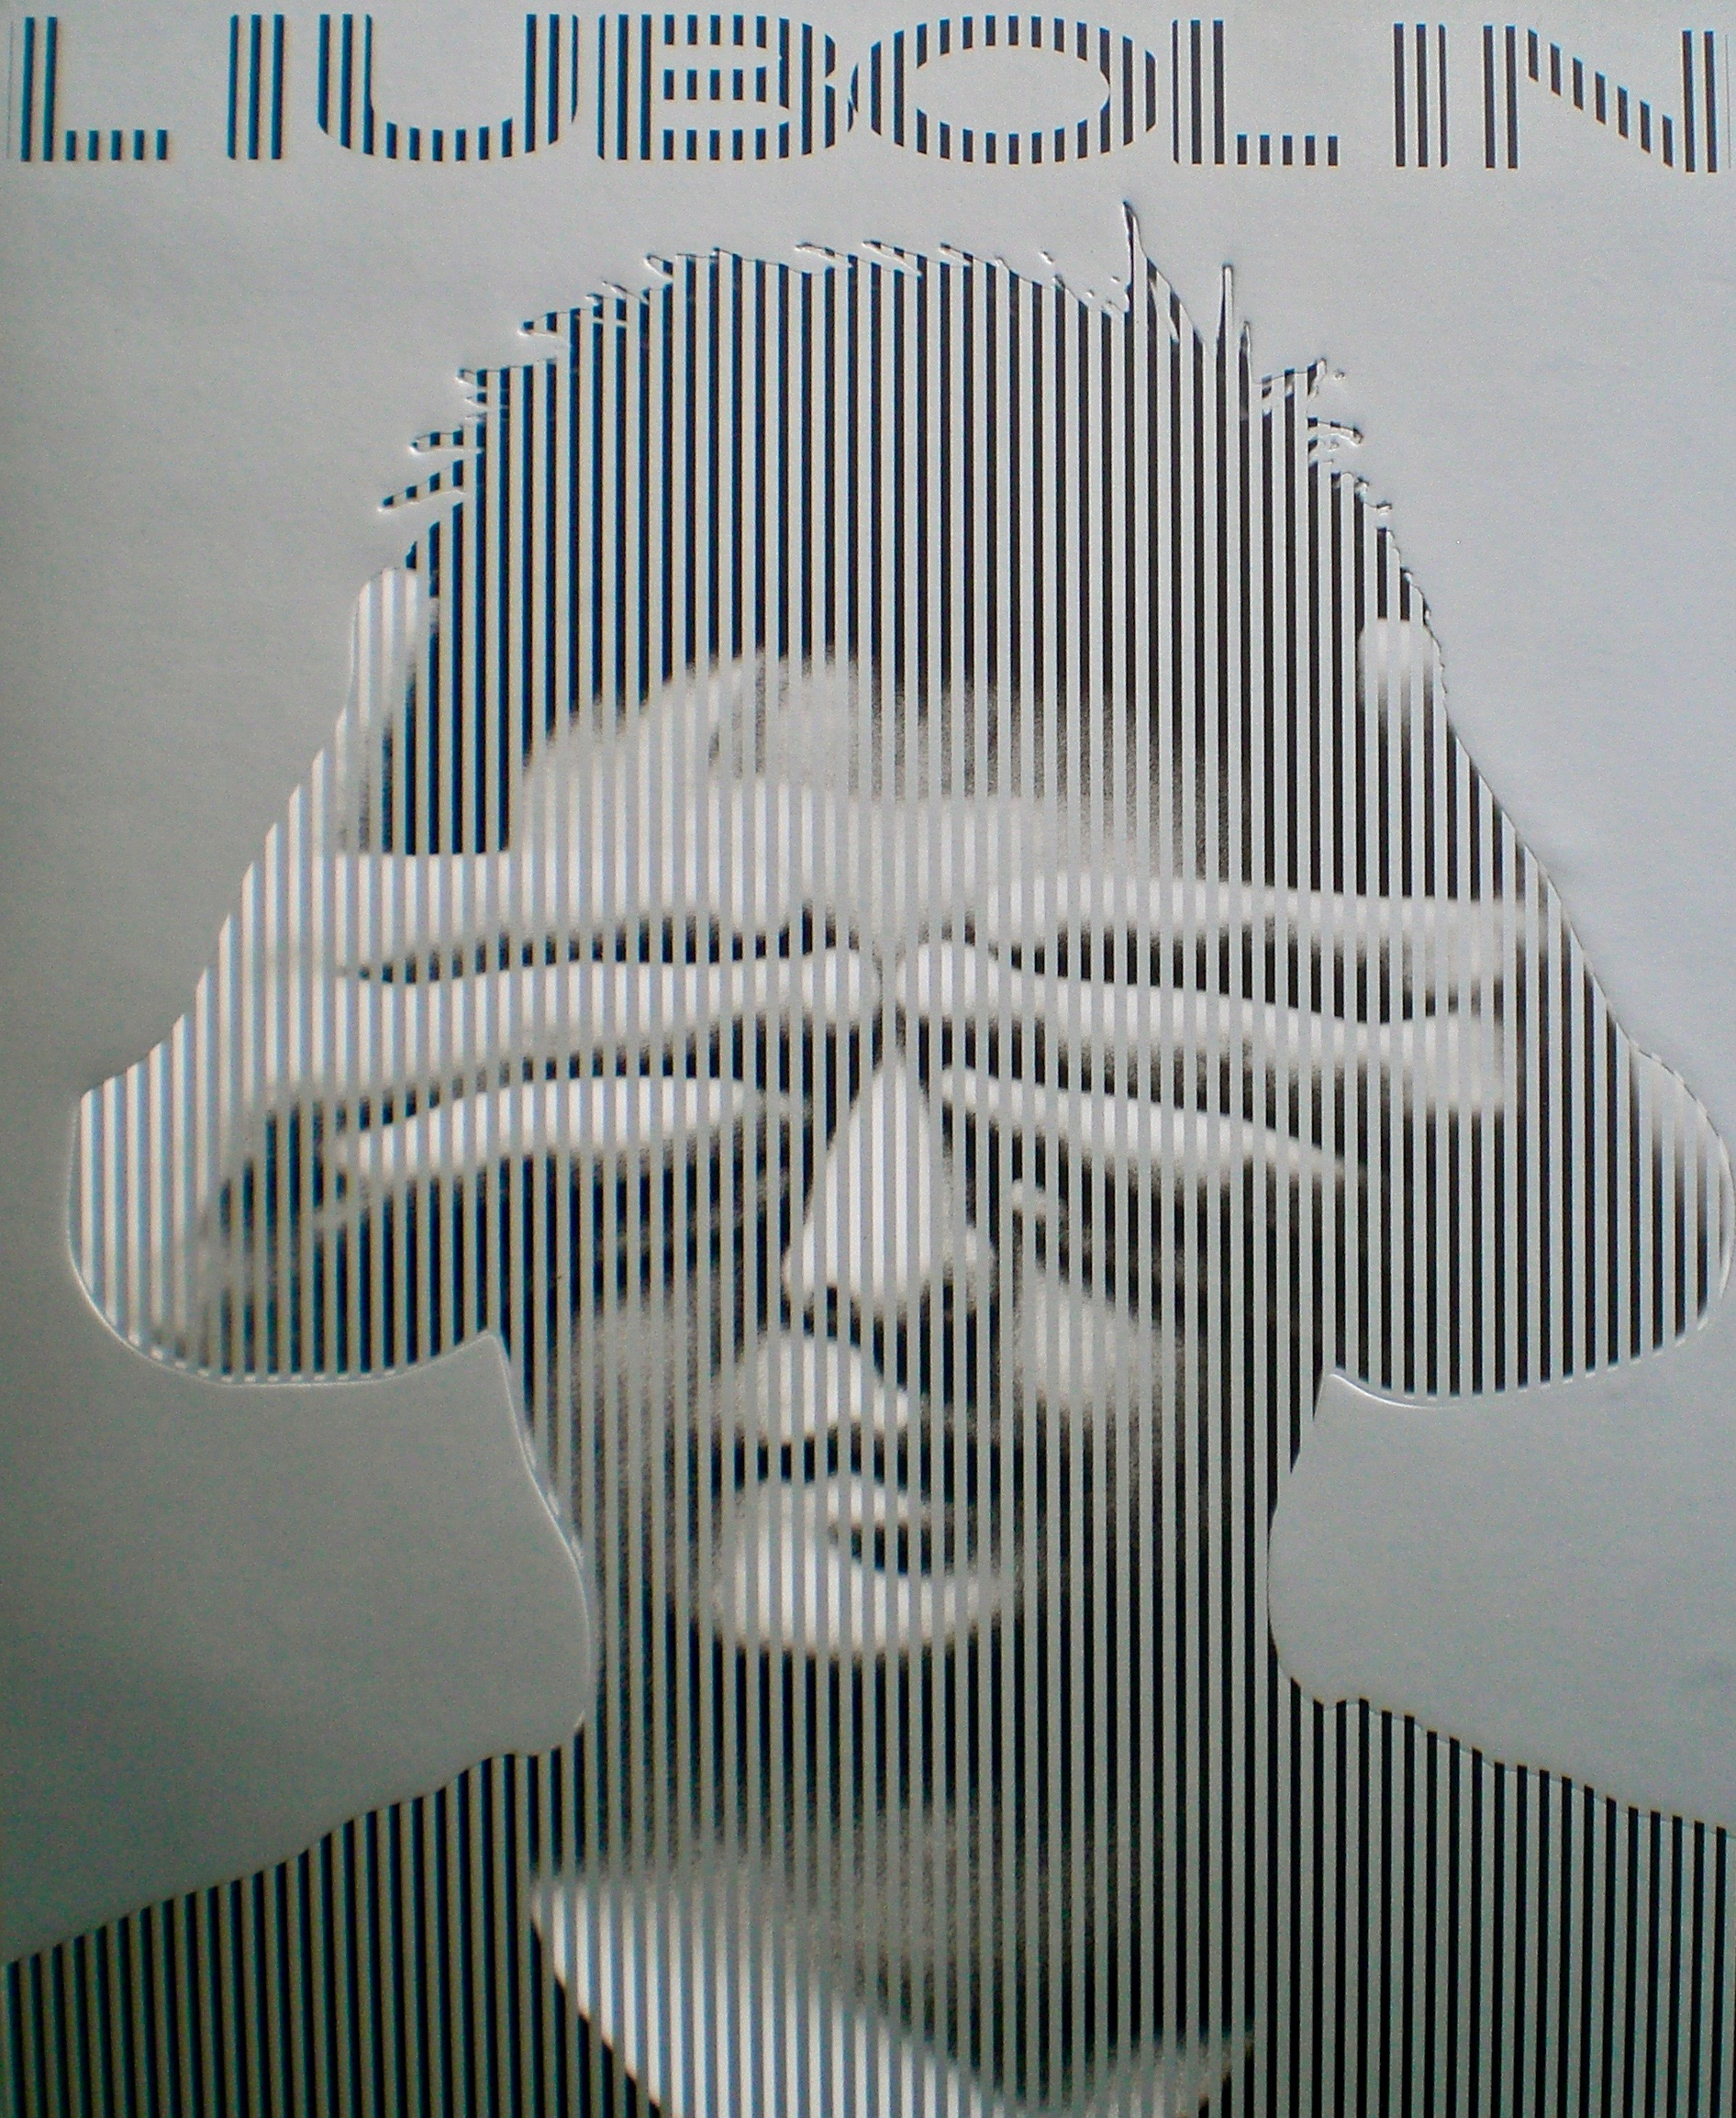 Cover of Liu Bolin's collection of works until 2008.